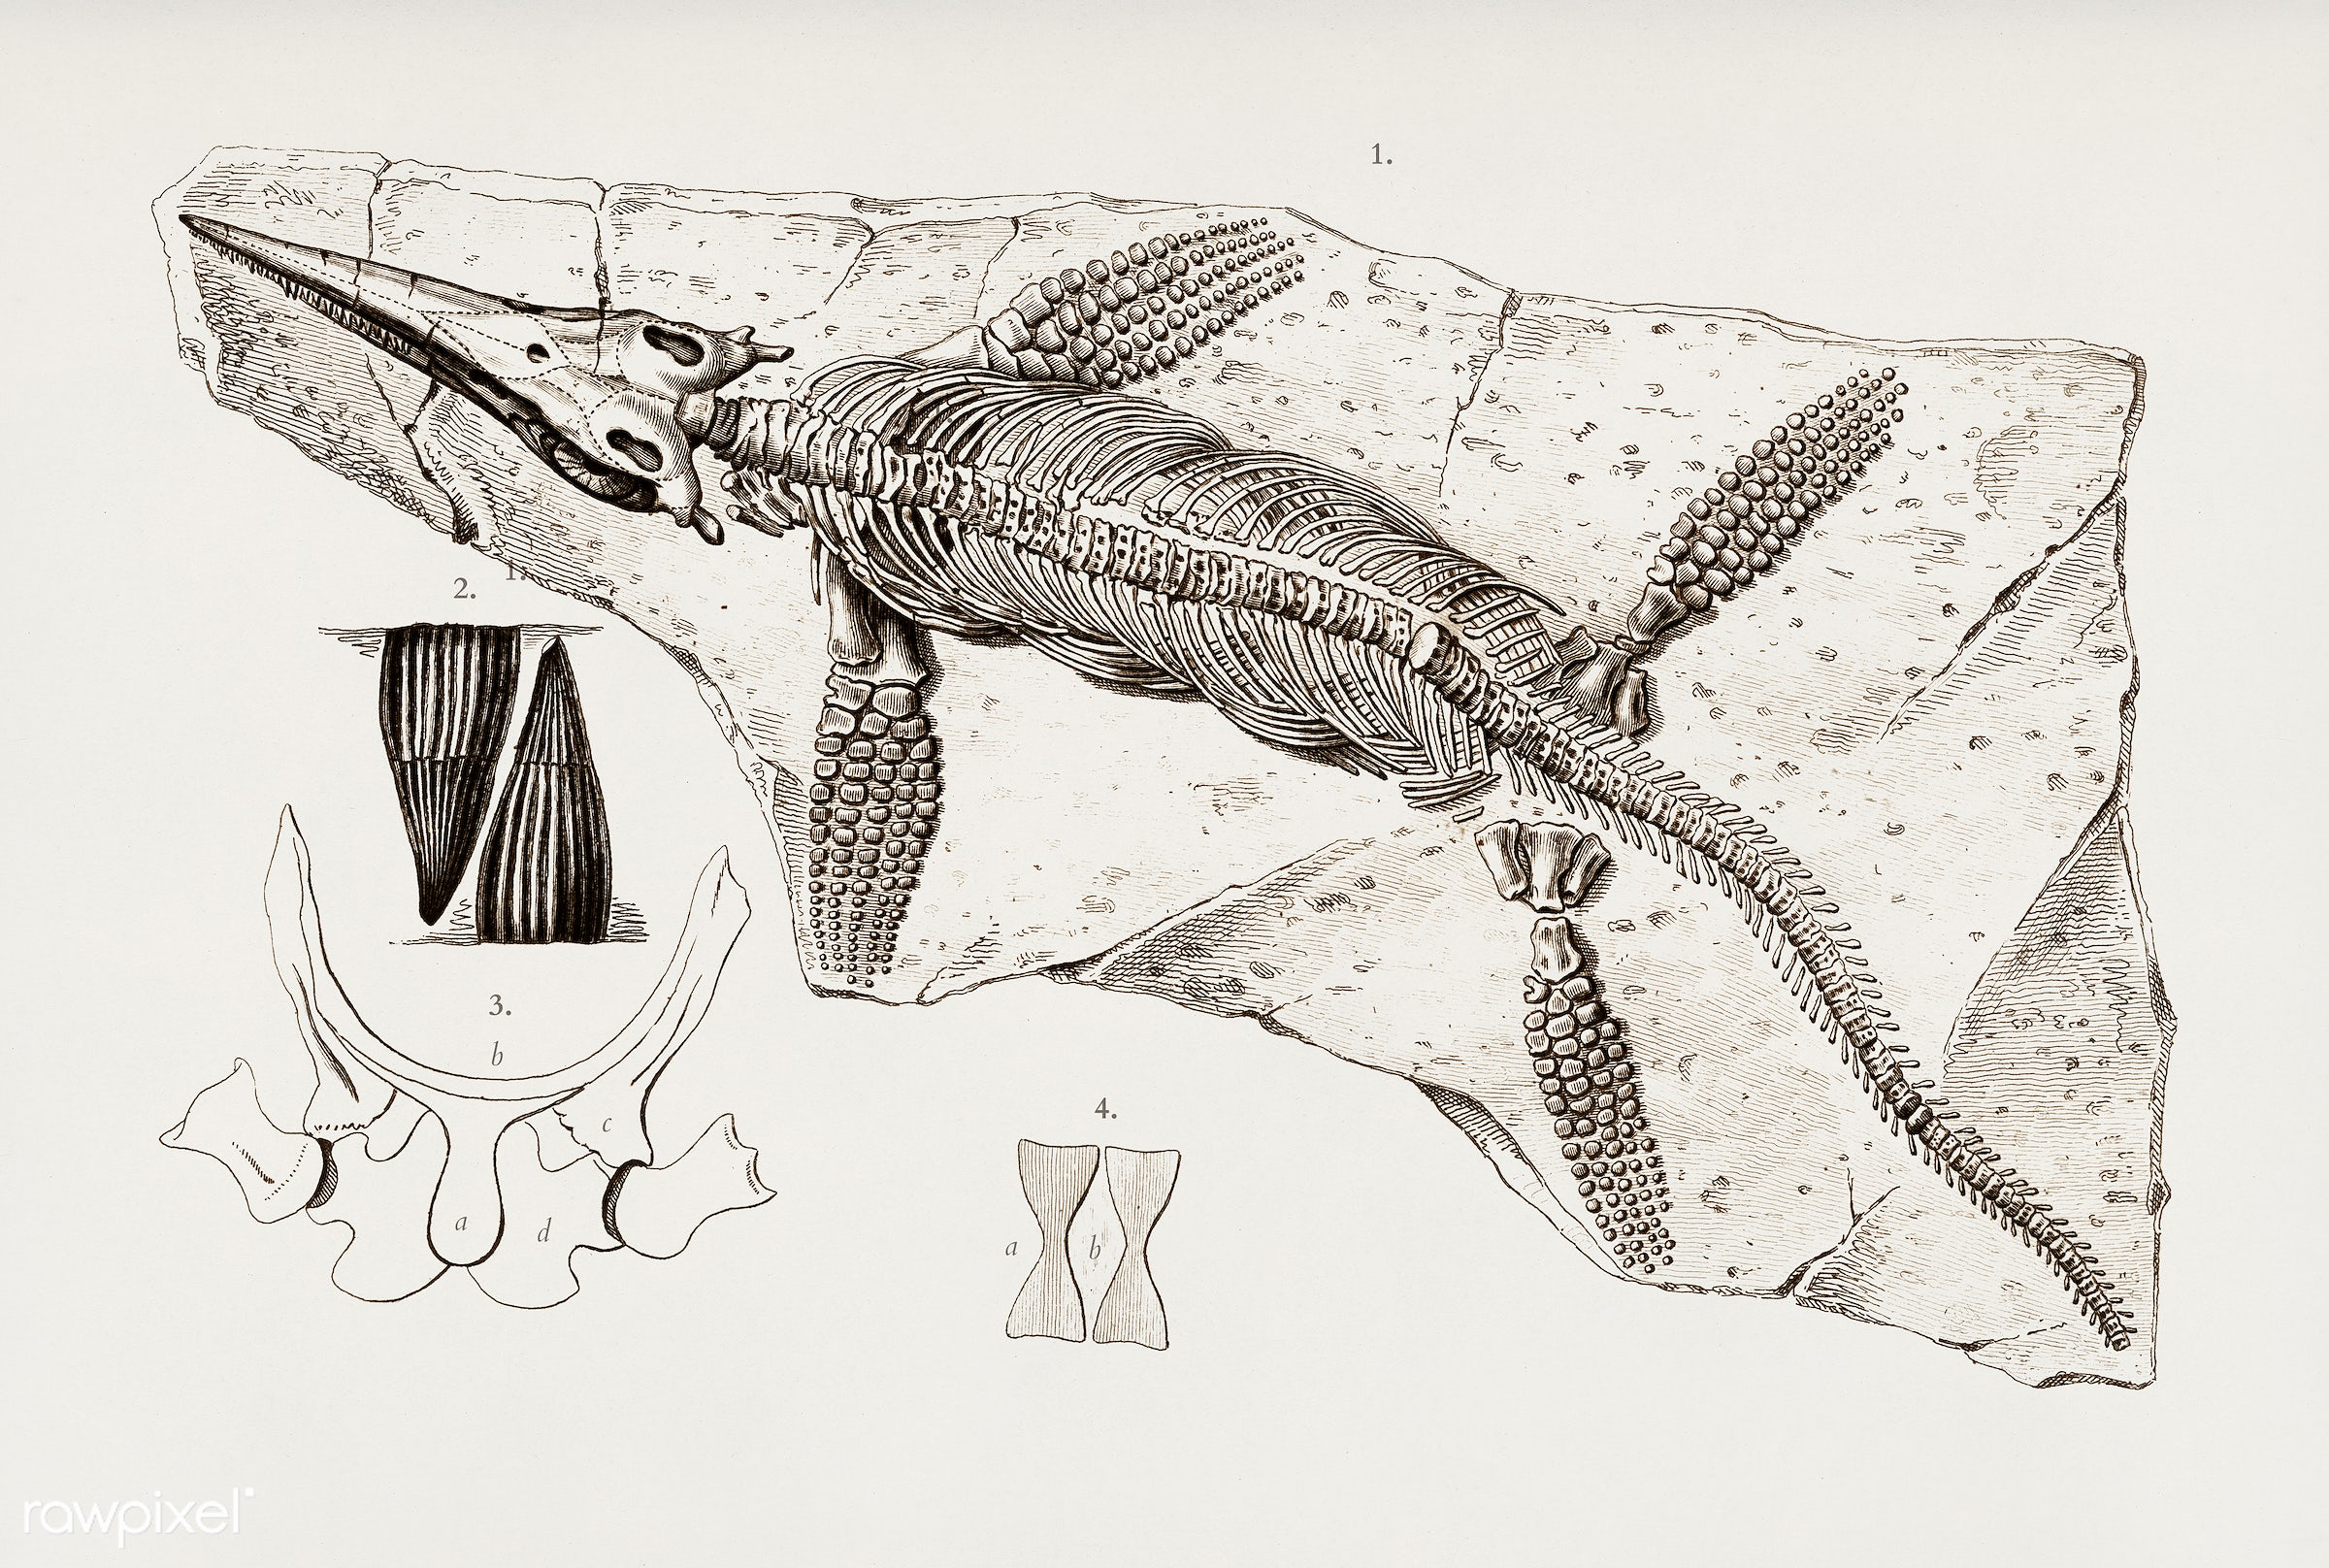 Chthyosaurus illustrated by Charles Dessalines D' Orbigny (1806-1876). Digitally enhanced from our own 1892 edition of...